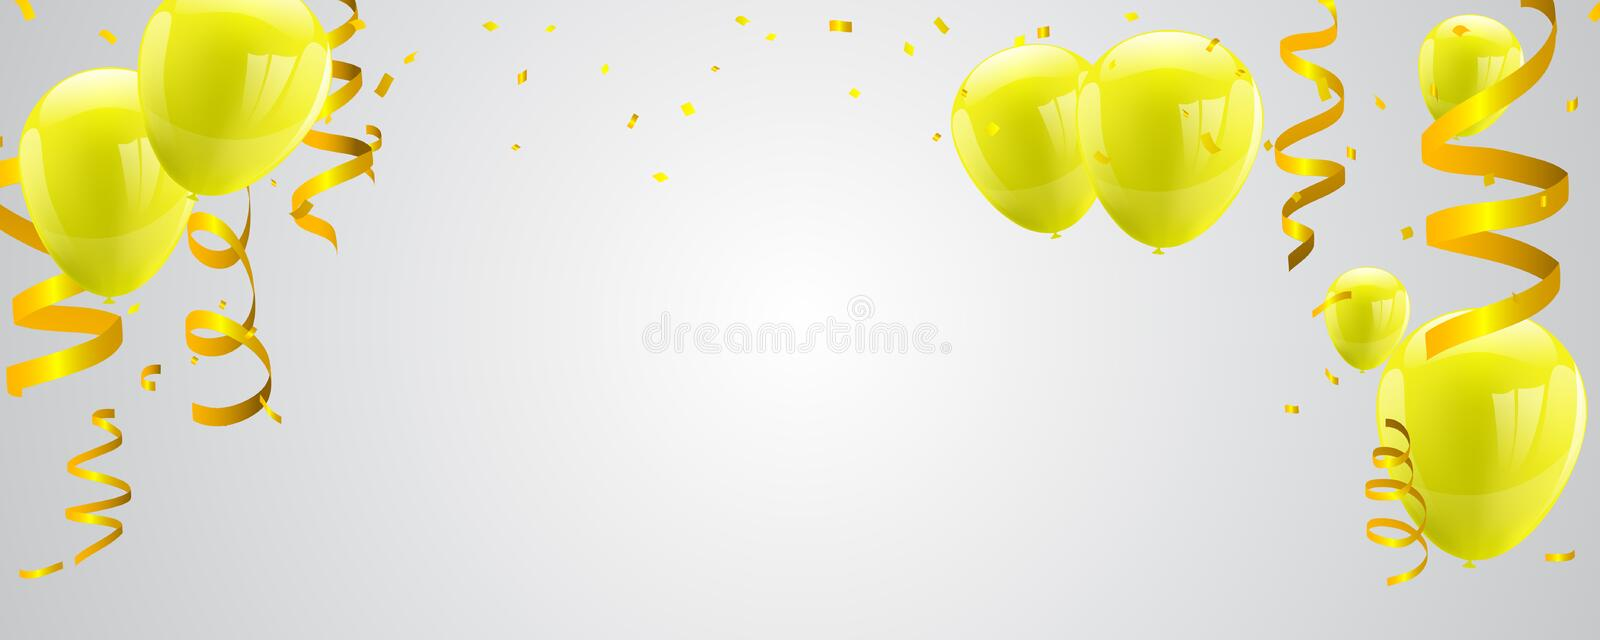 Celebration party banner with Yellow balloons on white background. vector illustration